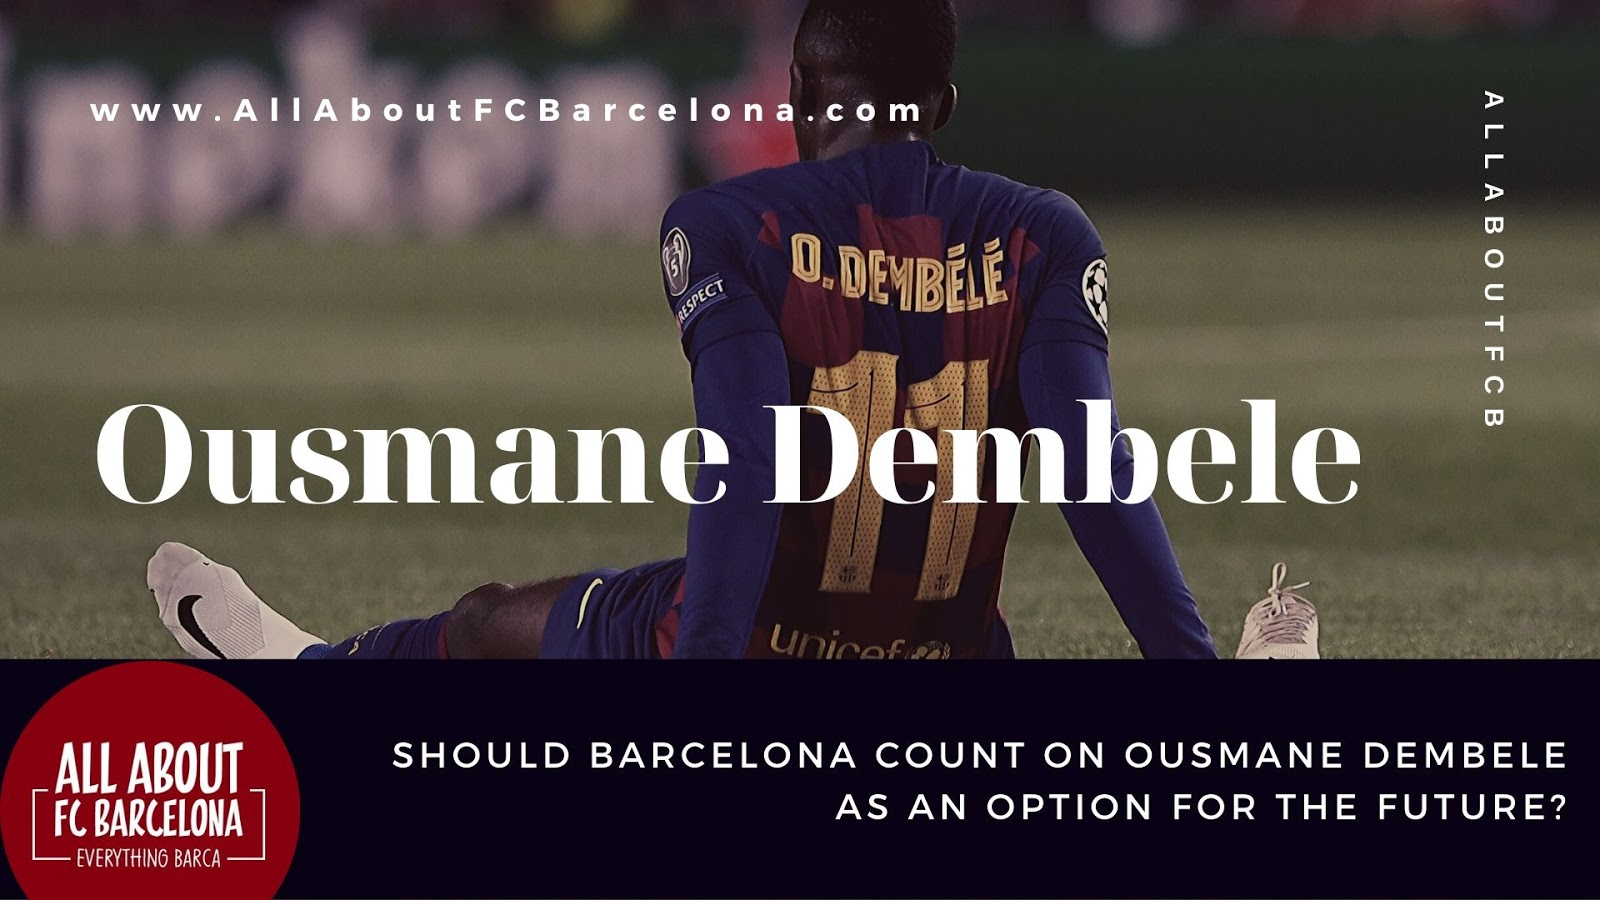 Should Barcelona Really Give Up on Ousmane Demebele as a Credible Option? #Barca #FCBarcelona